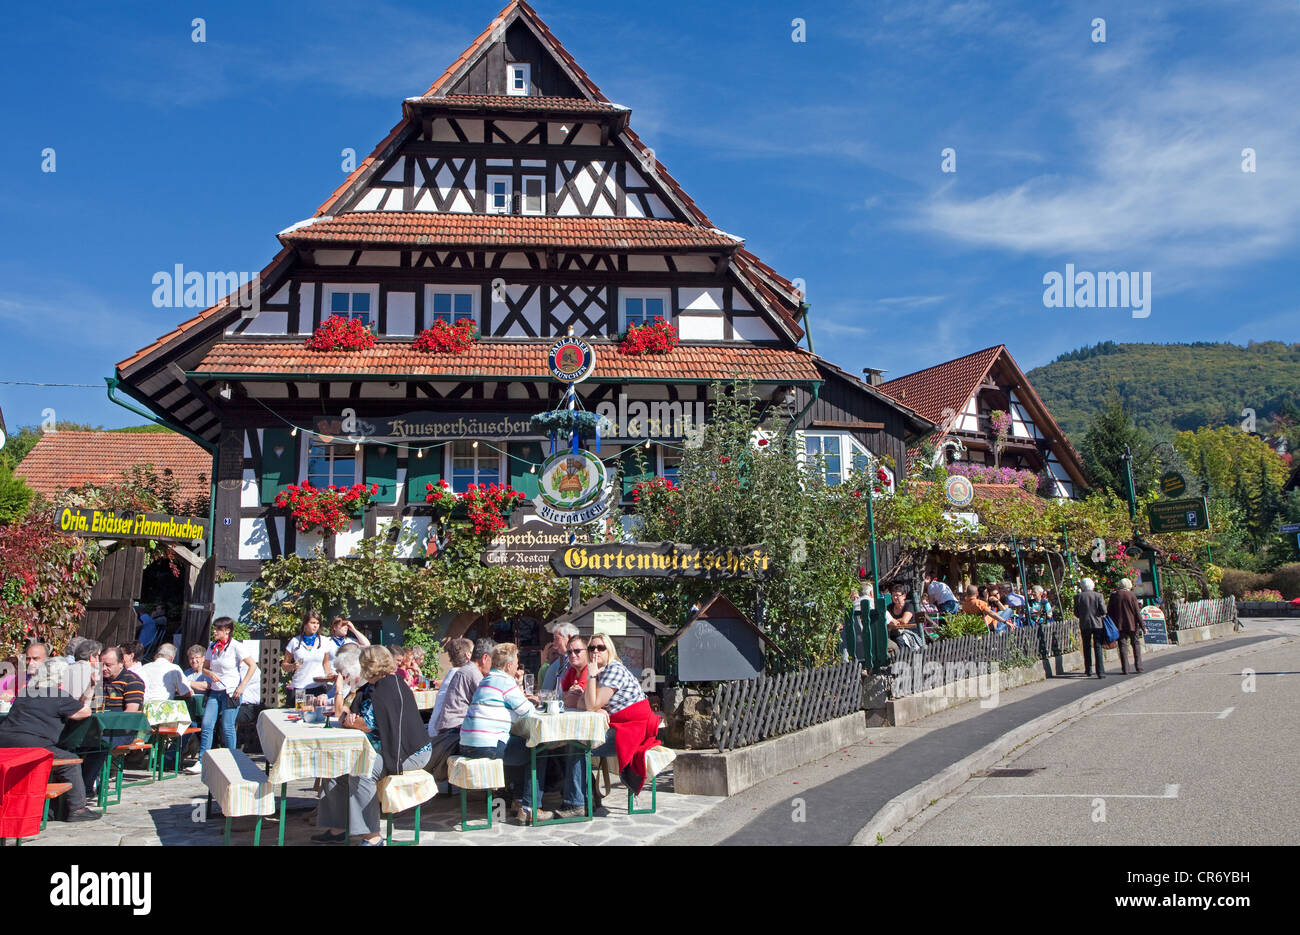 Guests in the garden restaurant of the Knusperhaeuschen, , North Black forest, Black forest, Baden-Wuerttemberg - Stock Image